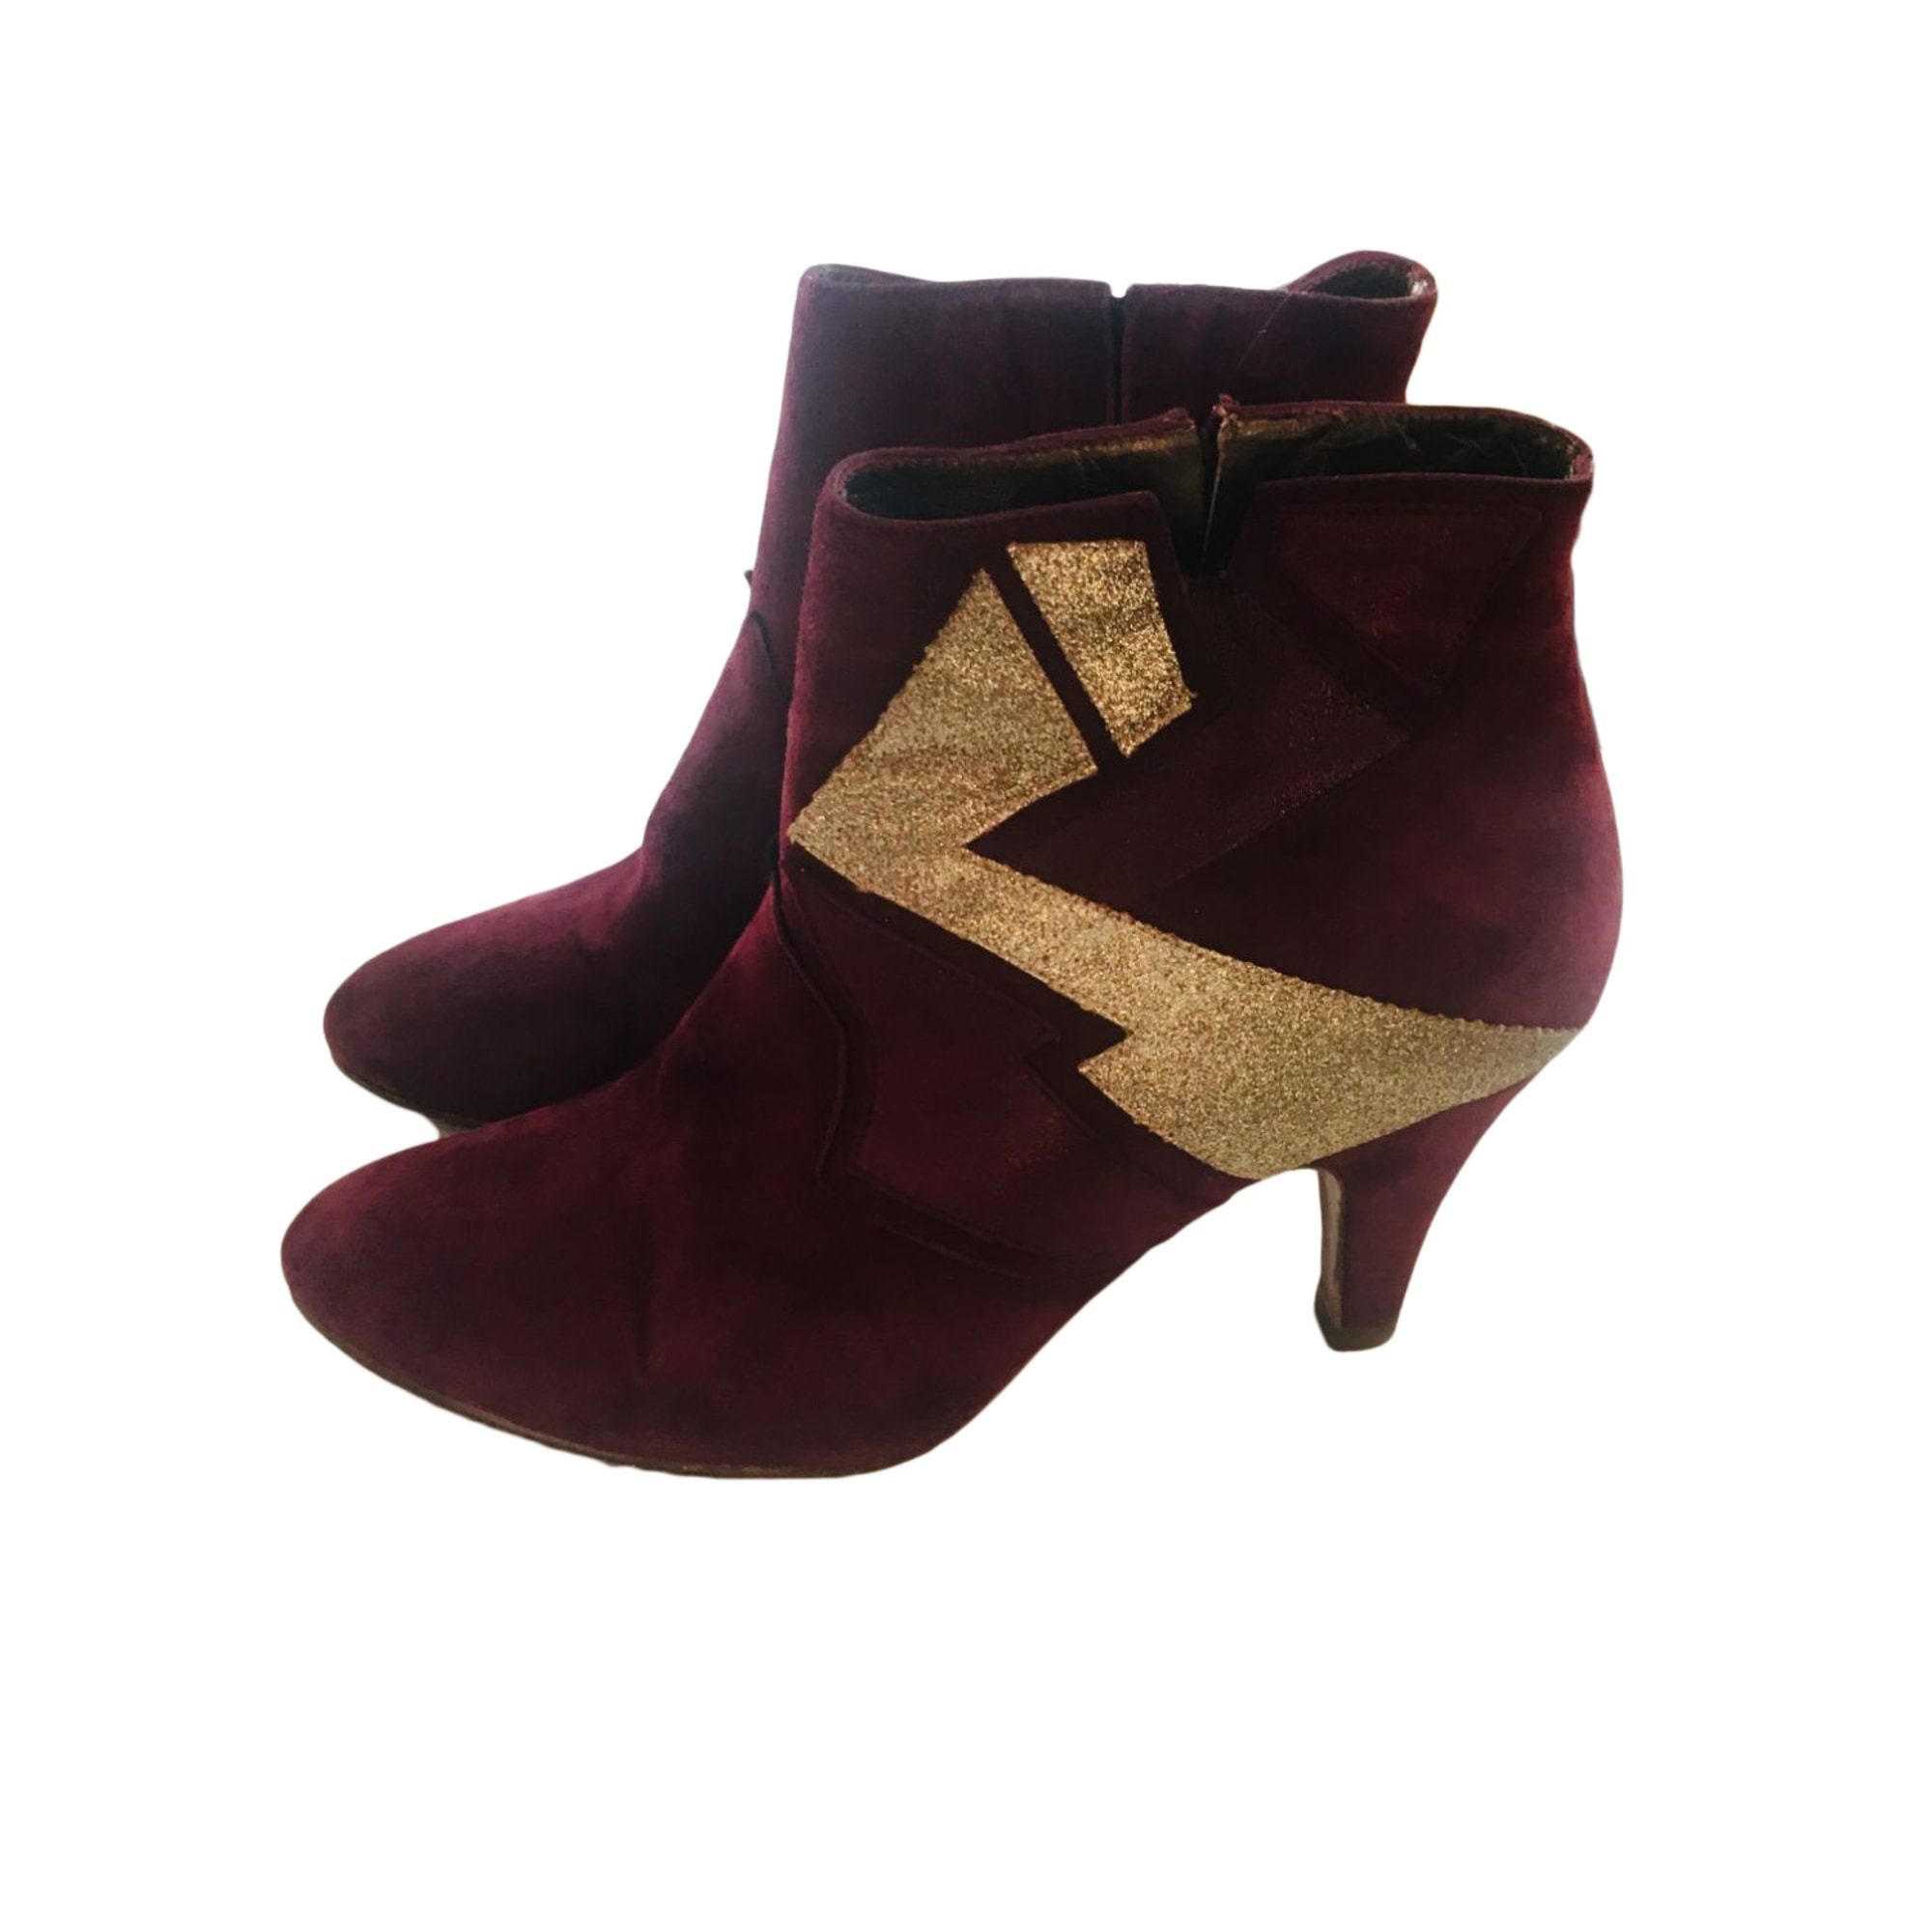 High Heel Ankle Boots PATRICIA BLANCHET Red, burgundy